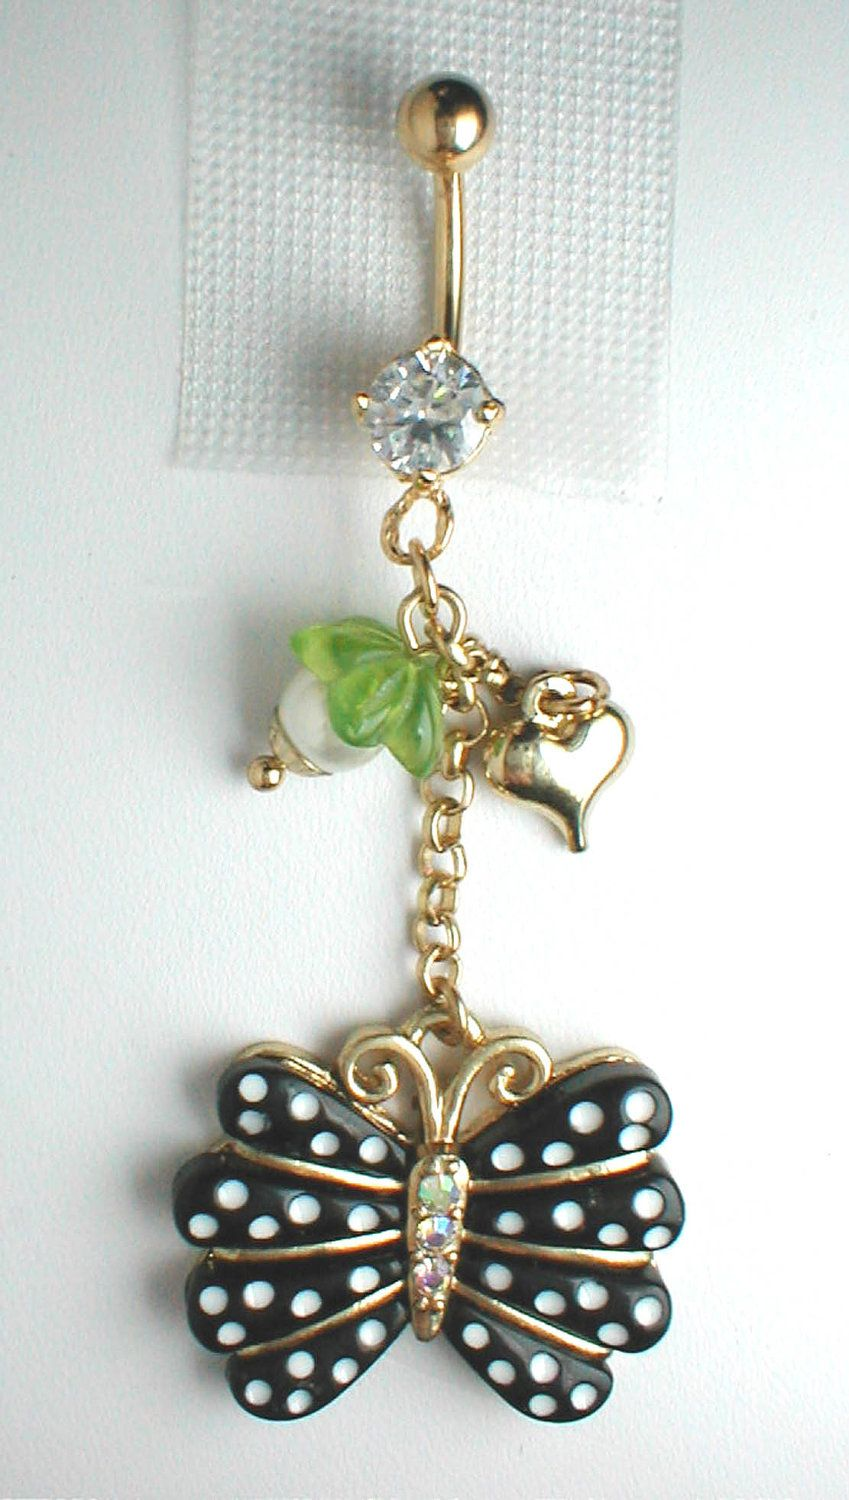 Unique Belly Ring - Butterfly Pendant On A Belly Ring. $11.95, via Etsy.